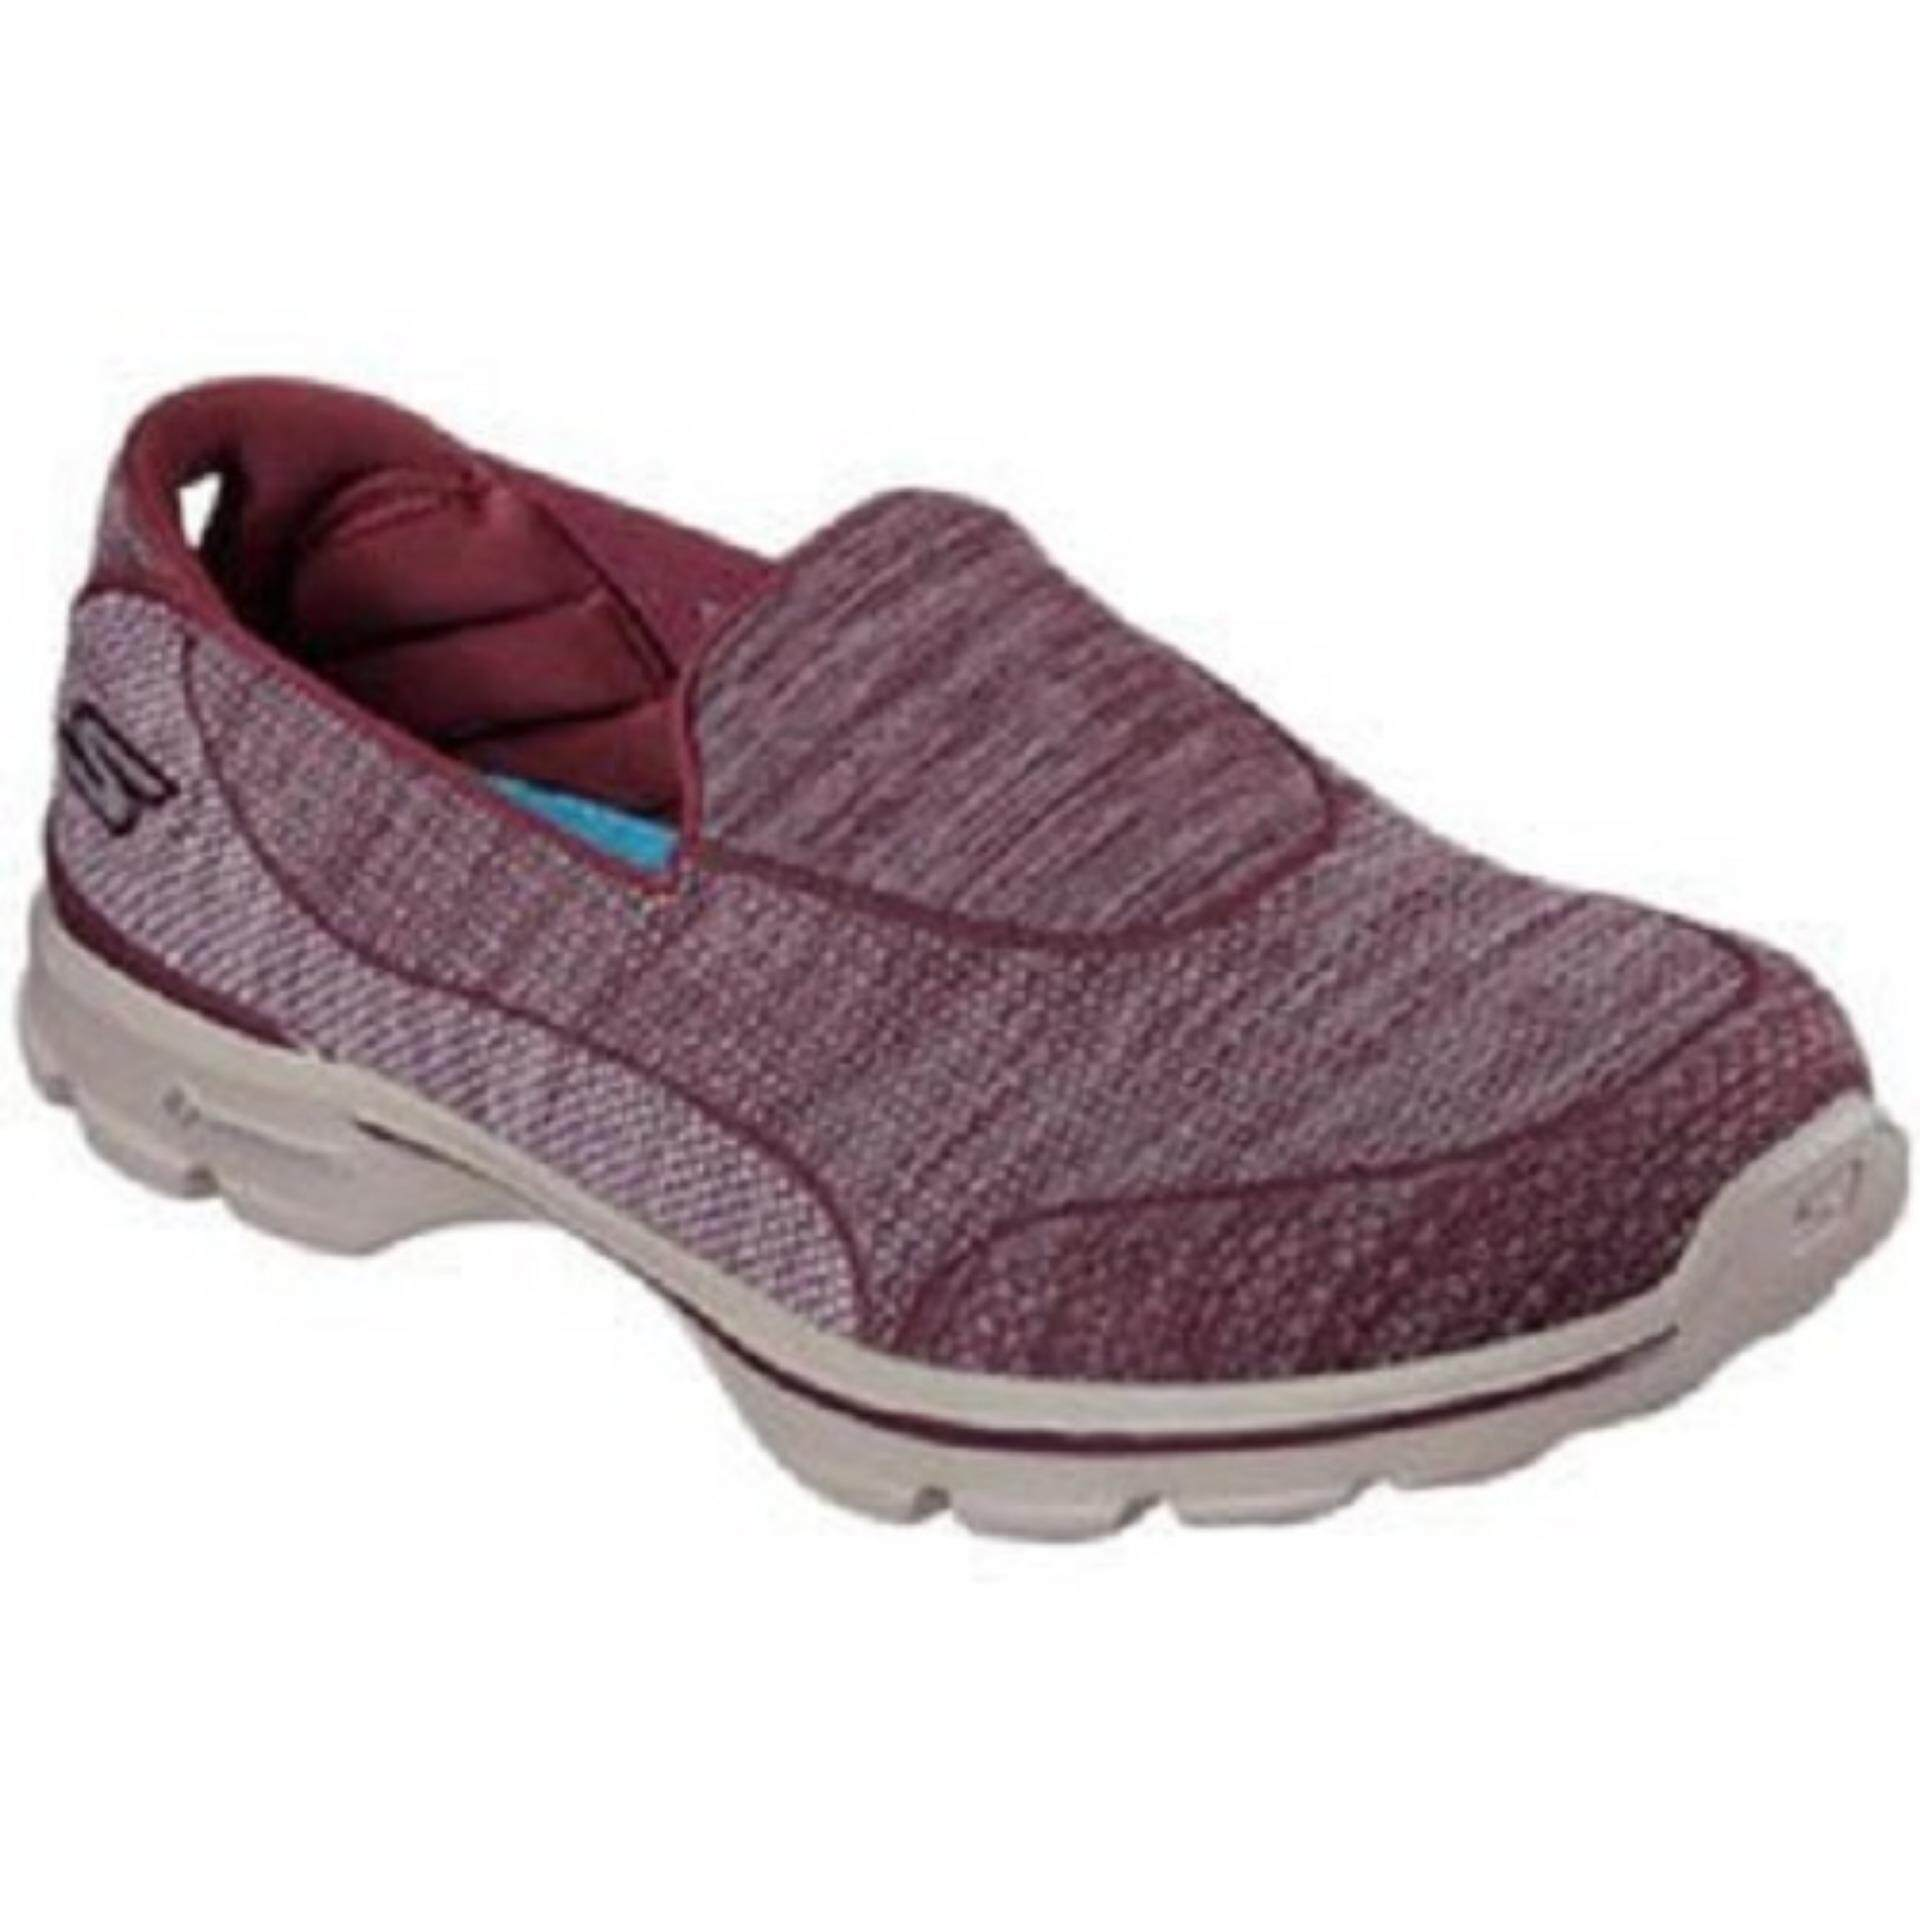 skechers slippers malaysia